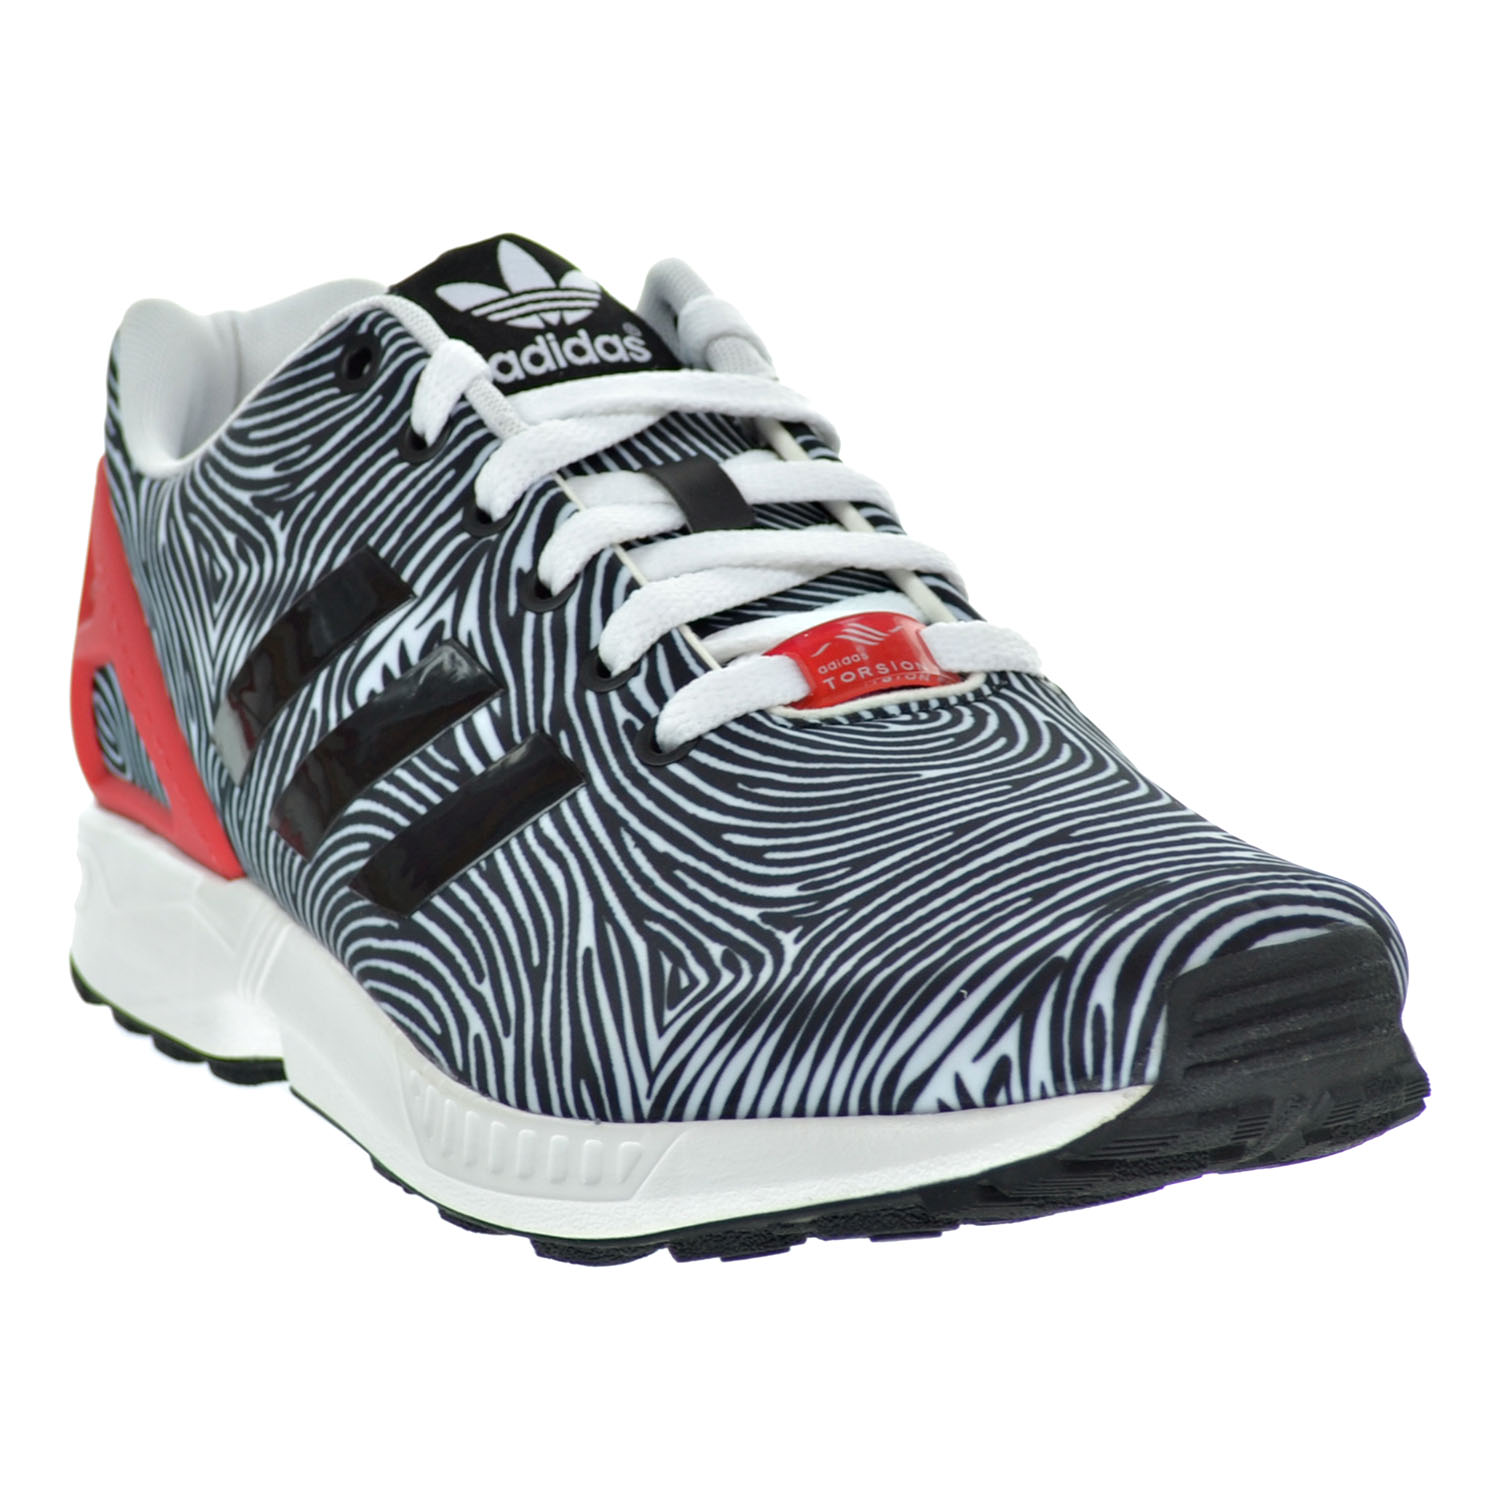 premium selection a3c33 d92ac Adidas ZX Flux Men s Shoes White Core Black Tomato b27457